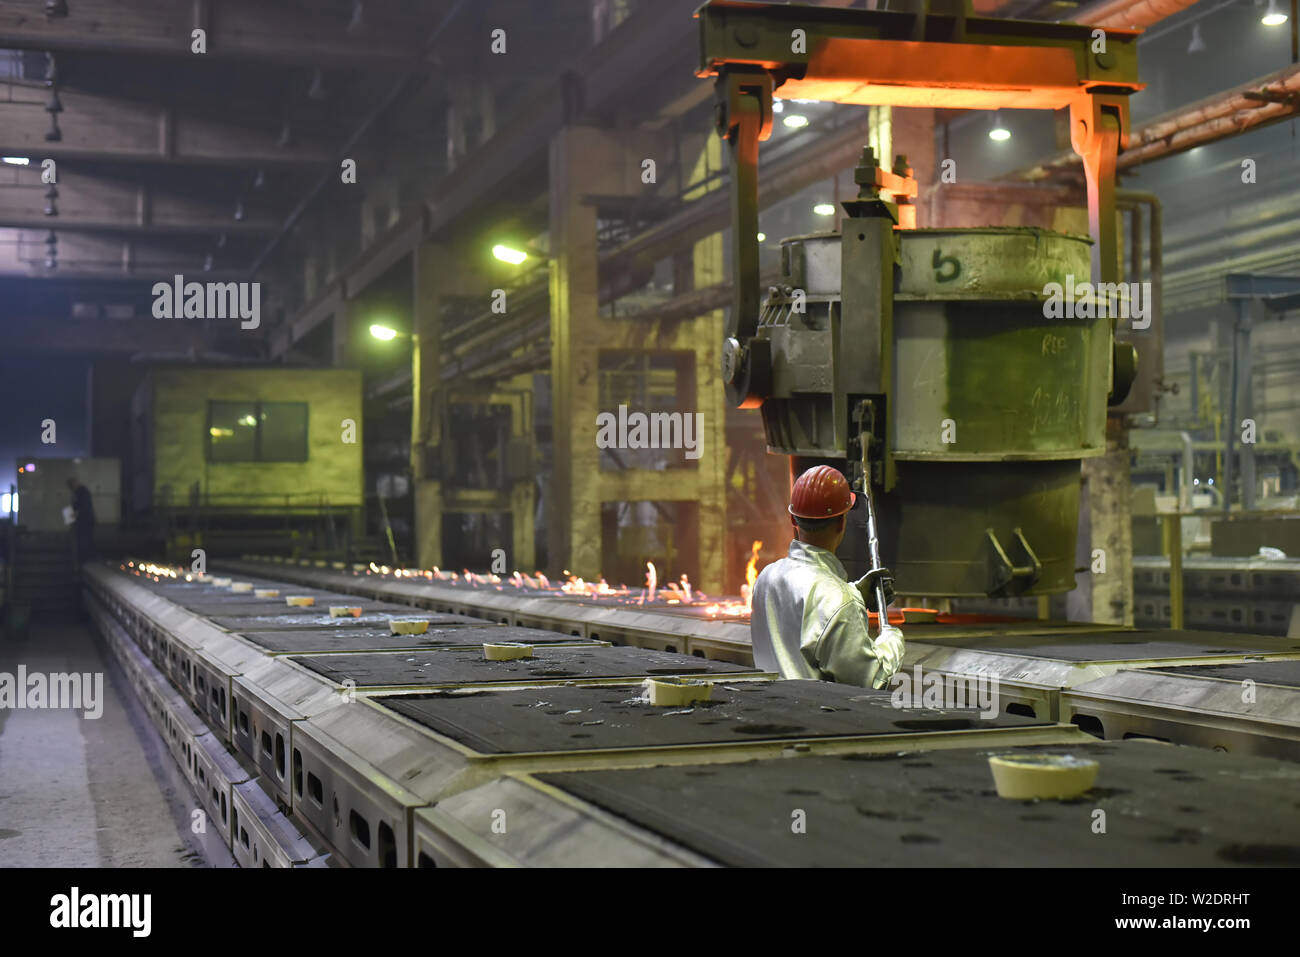 Workers in protective equipment in a foundry during the production of steel components - workplace industrial factory Stock Photo